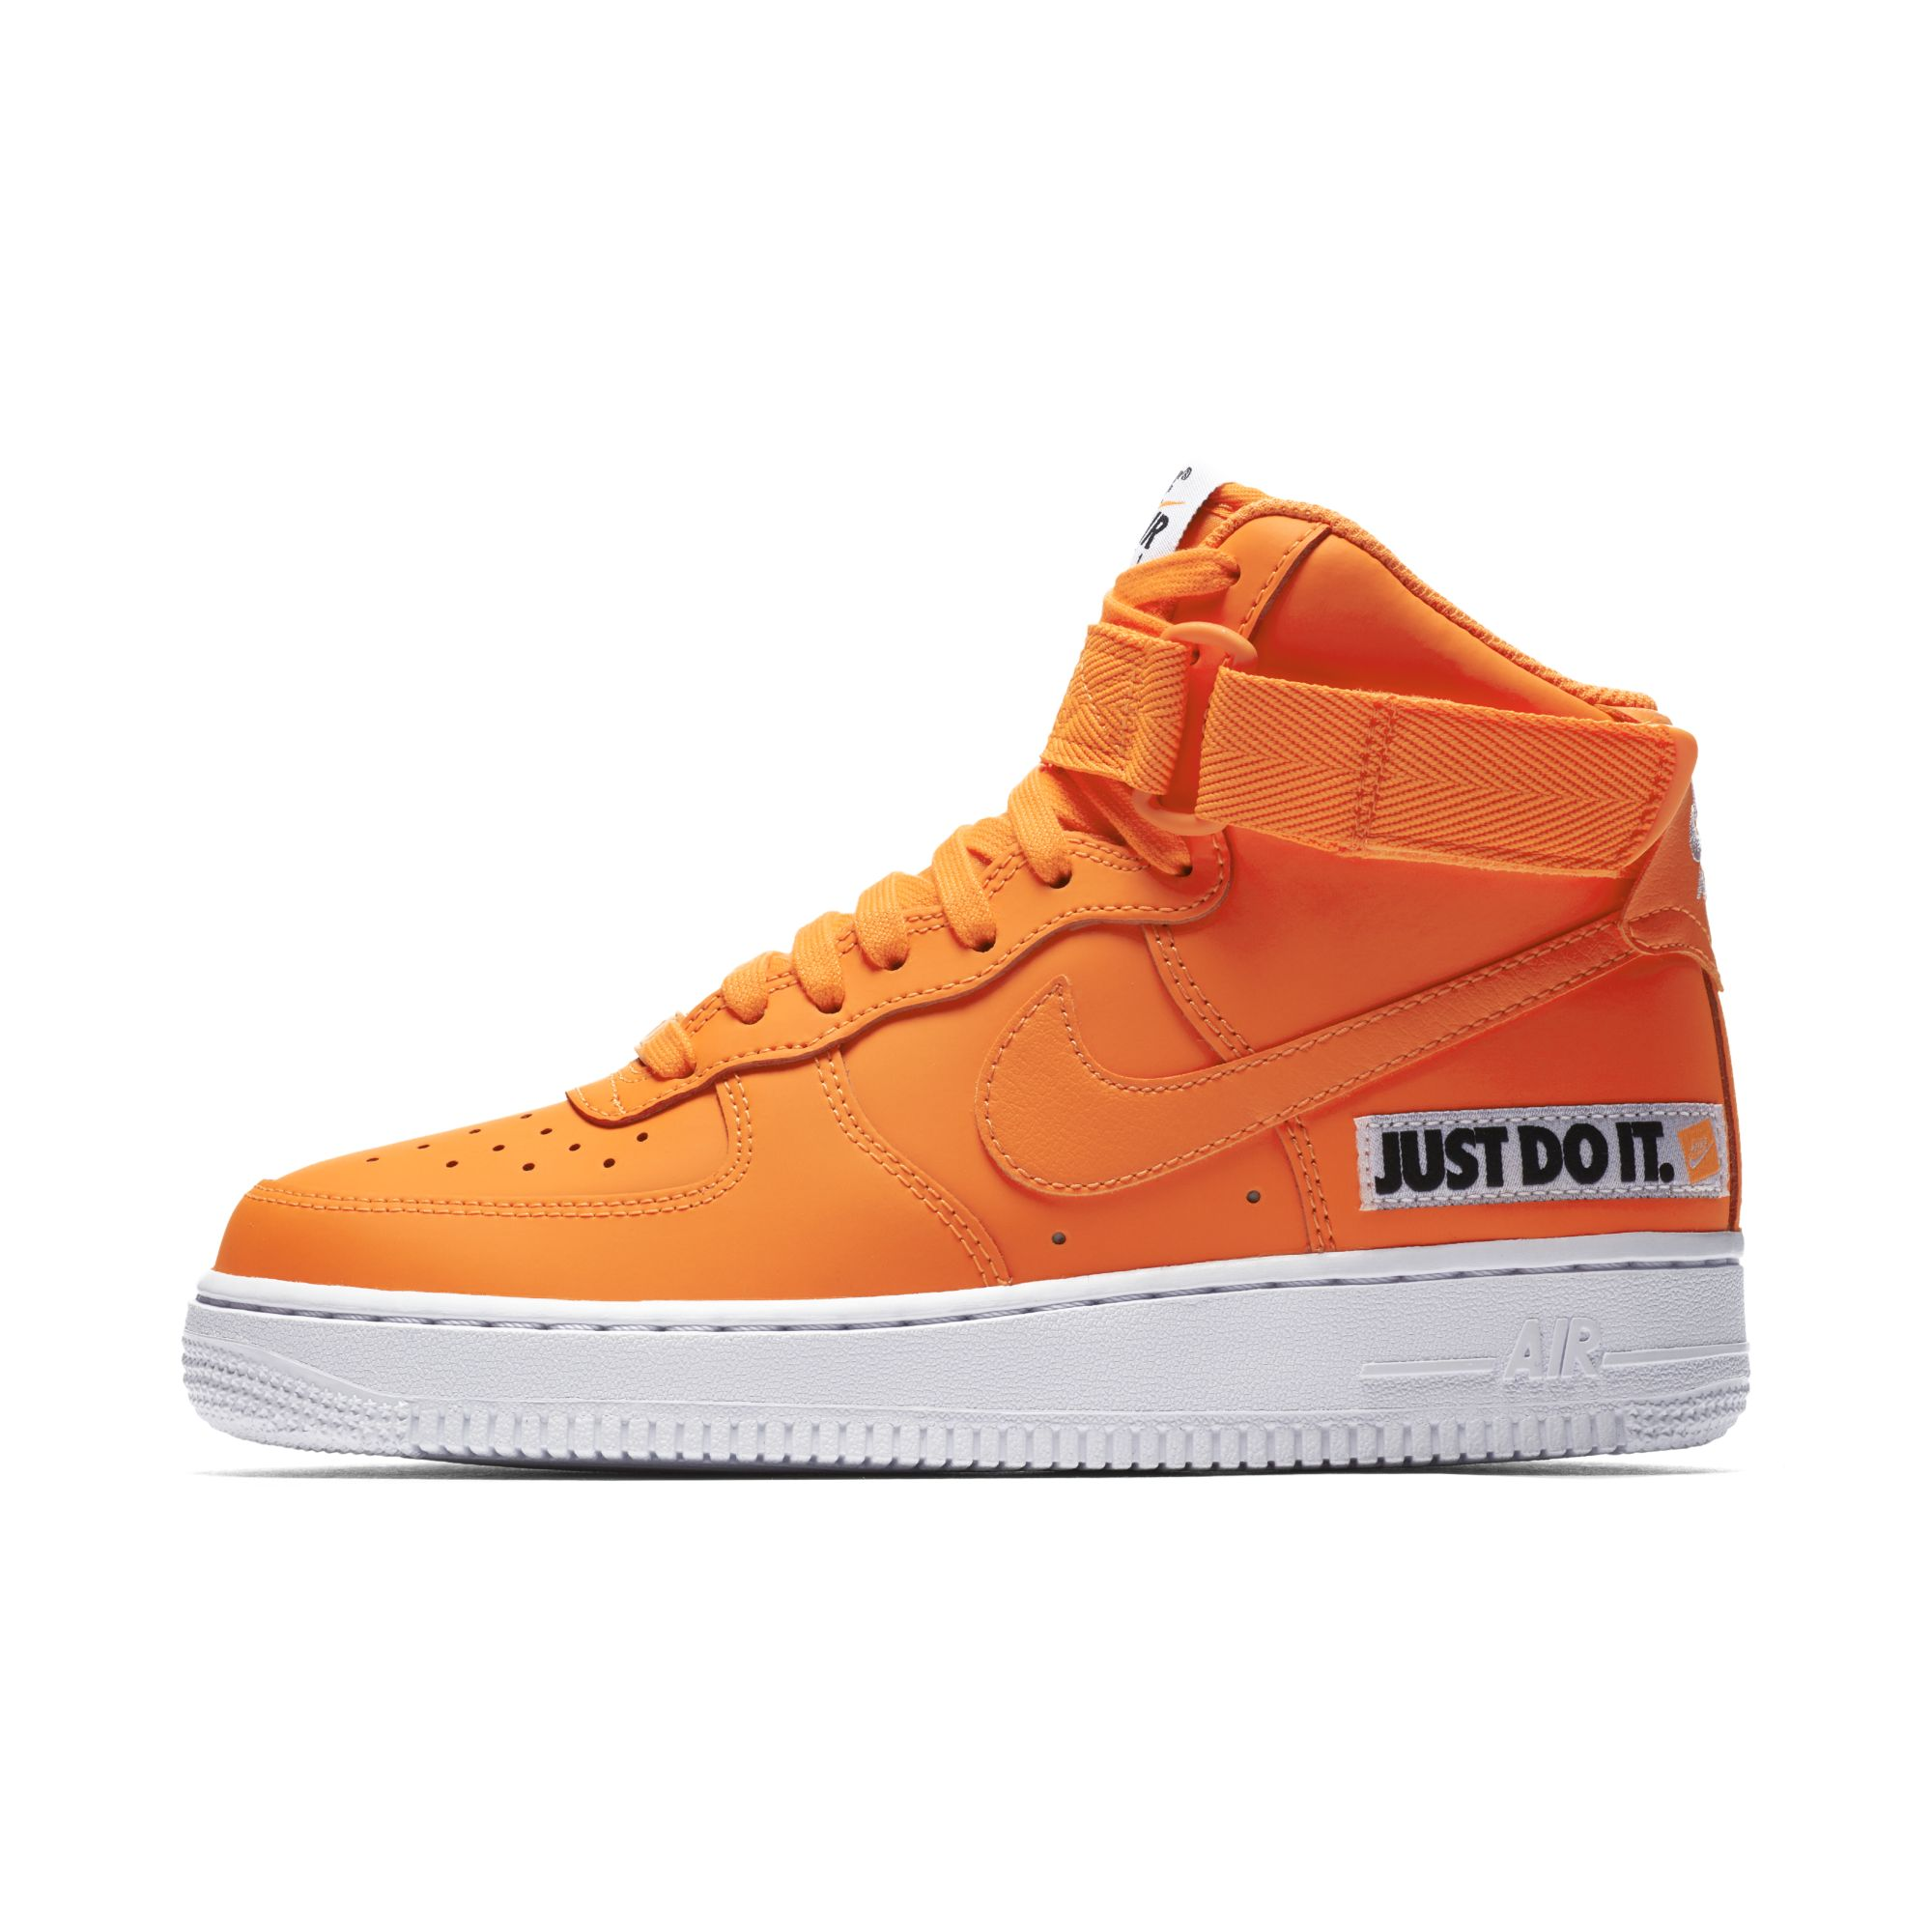 NIKE WMNS AIR FORCE 1 HIGH LX LEATHER TOTAL ORANGE WHITE 3 ...